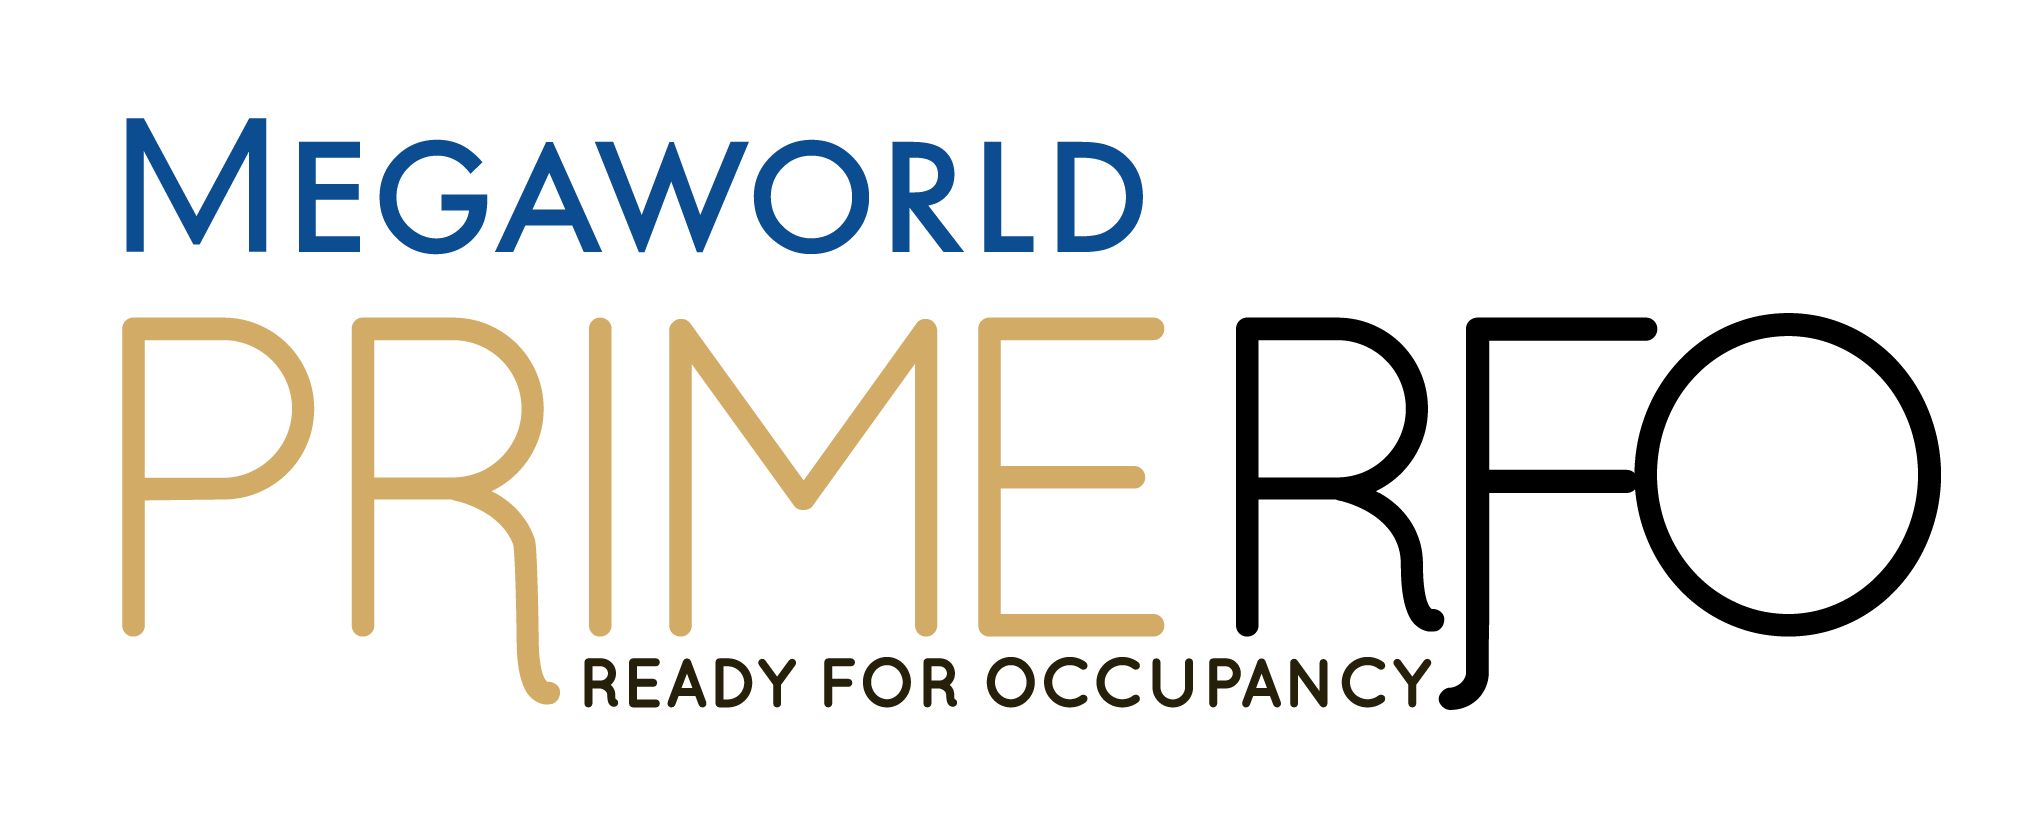 Megaworld Prime RFO-At Megaworld Prime RFO, our prime mission is to help you own your dream home NOW. We also offer Leasing and Resale Management Services.